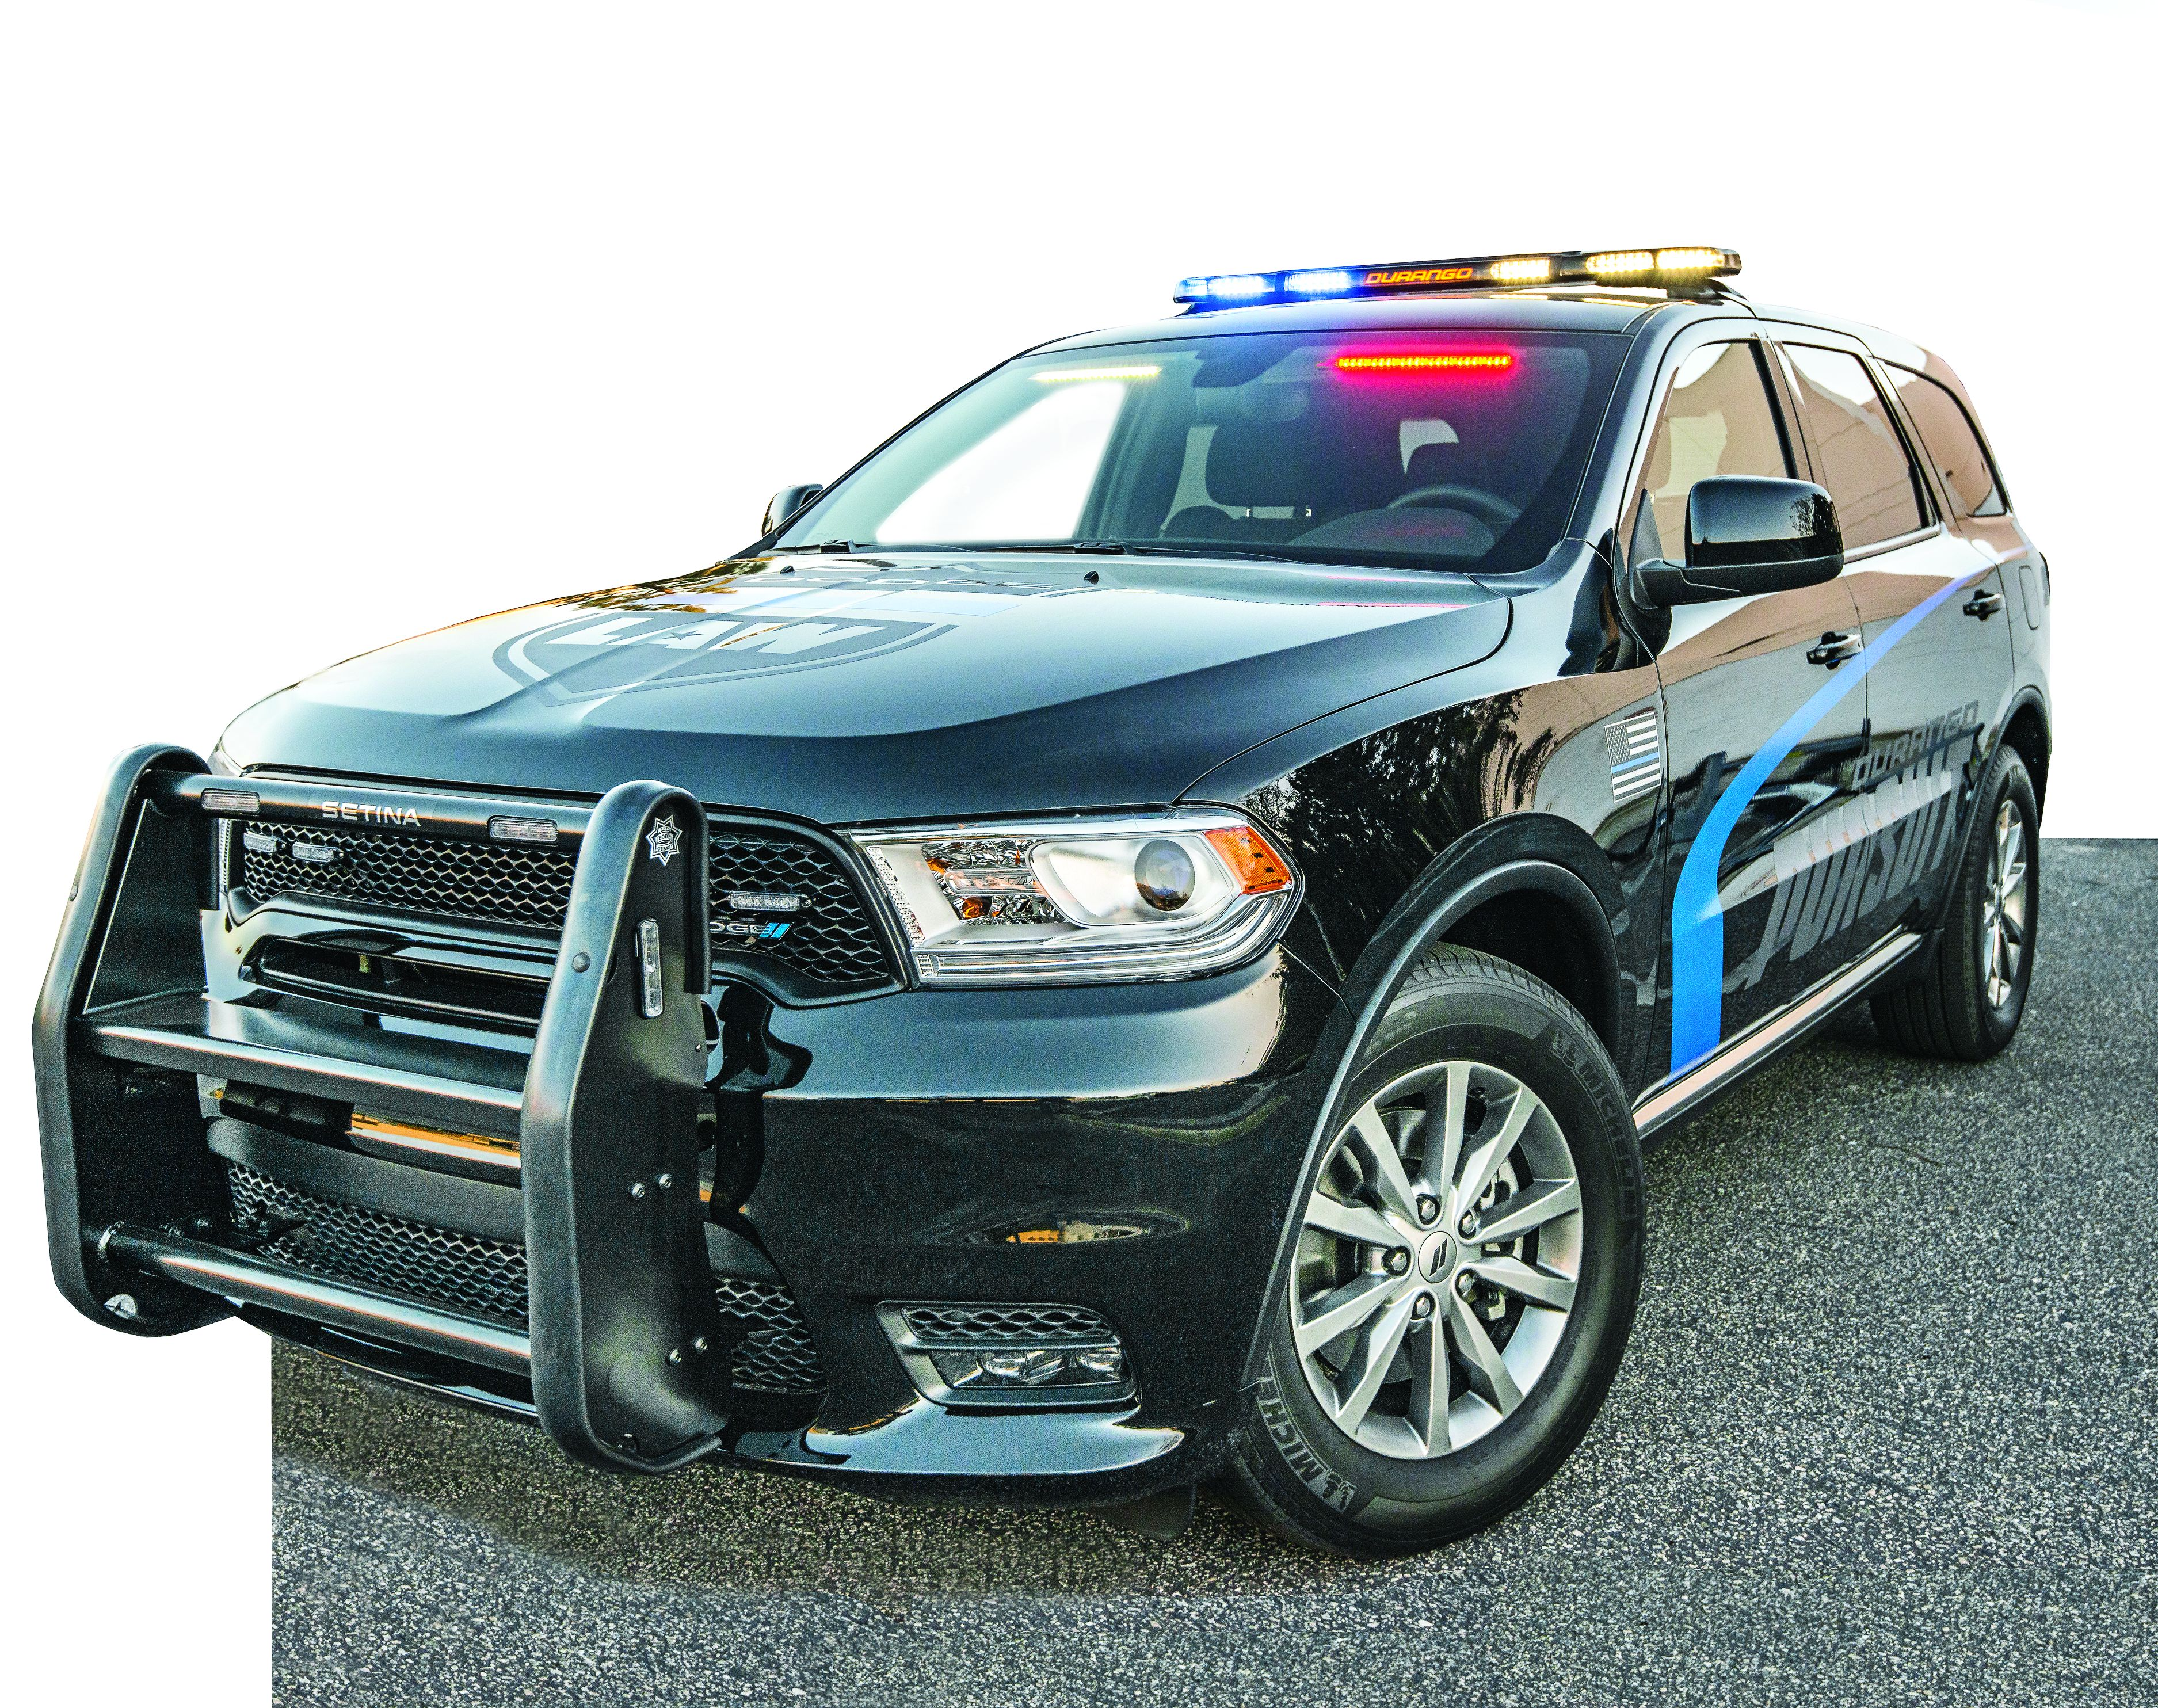 Driving the 2019 Dodge Durango Pursuit - Vehicle Ops ...